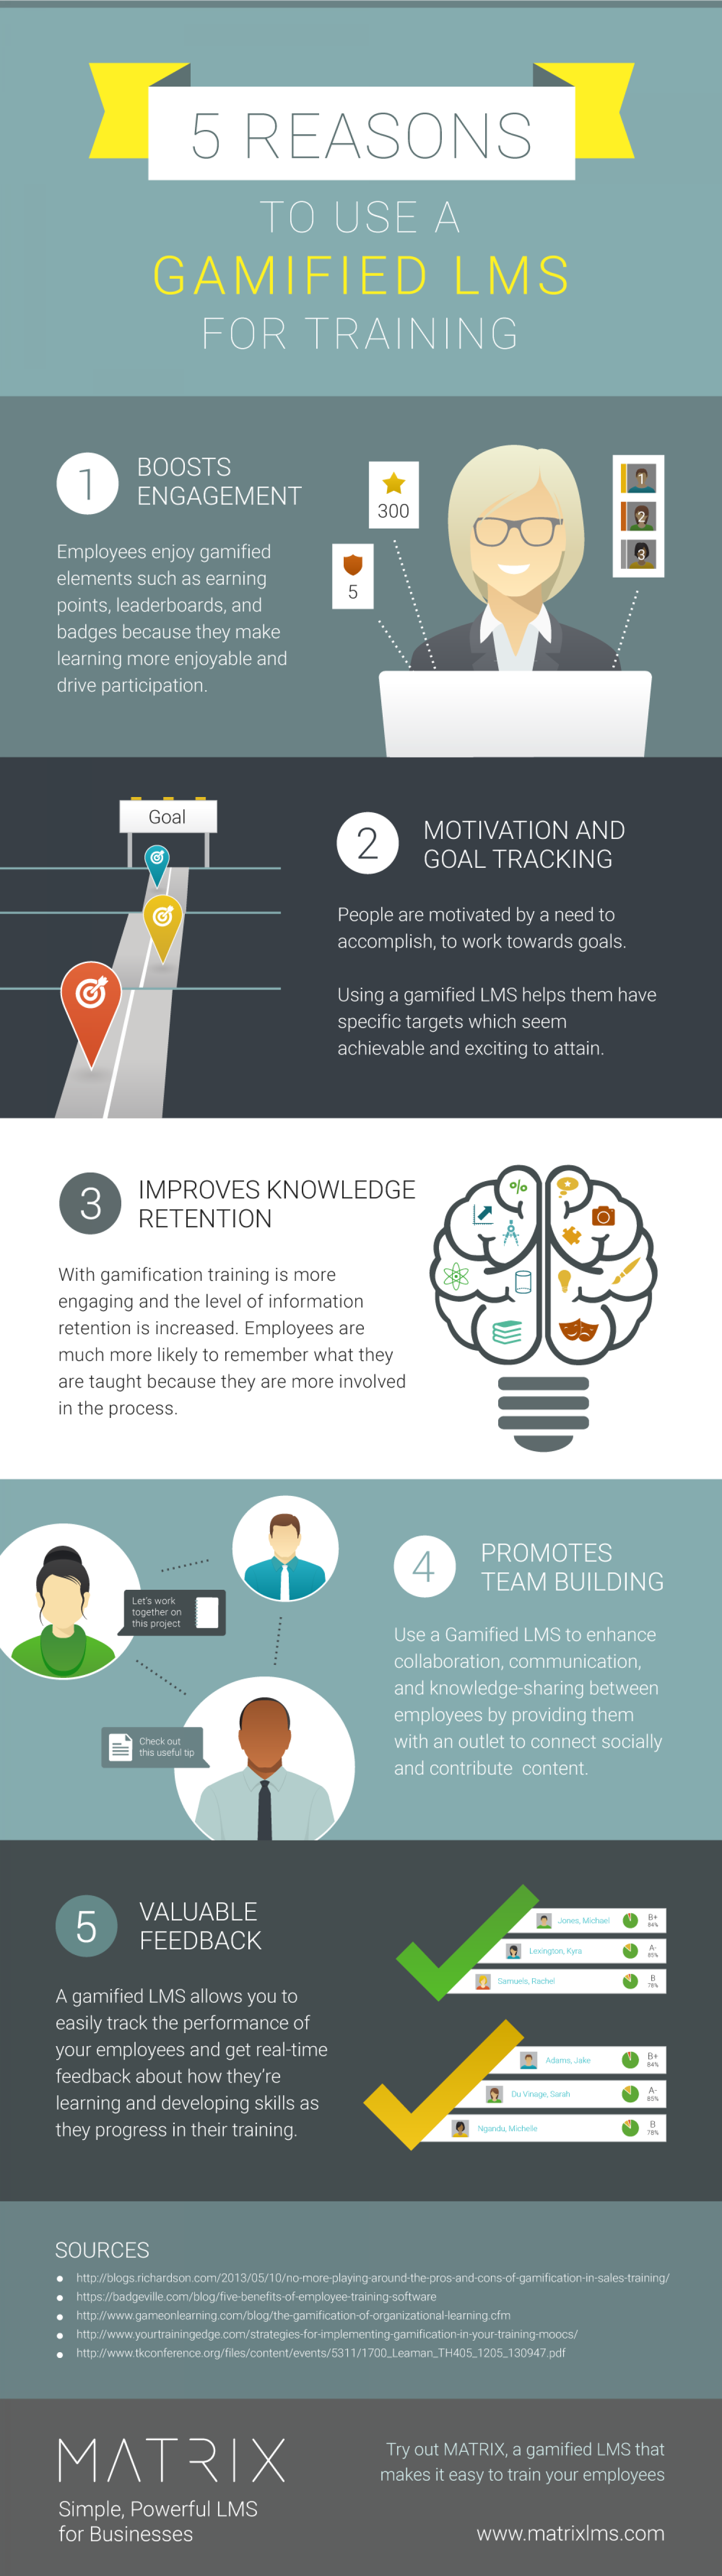 5 reasons to use a gamified LMS Infographic